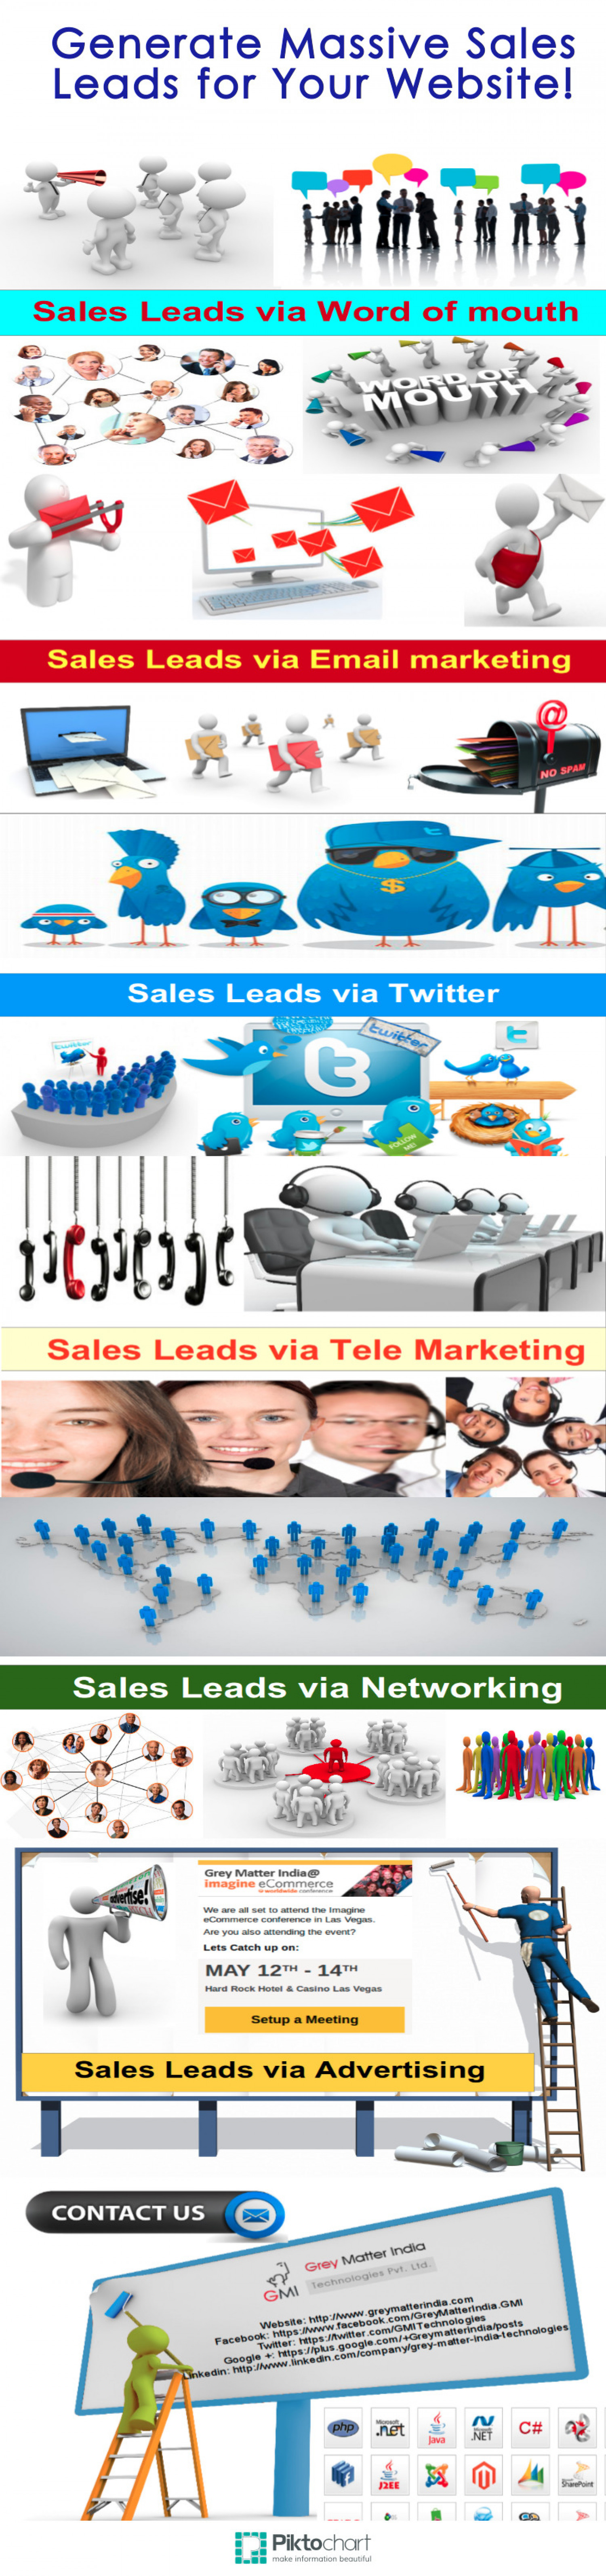 Generate Massive Sales Leads for Your Website! Infographic